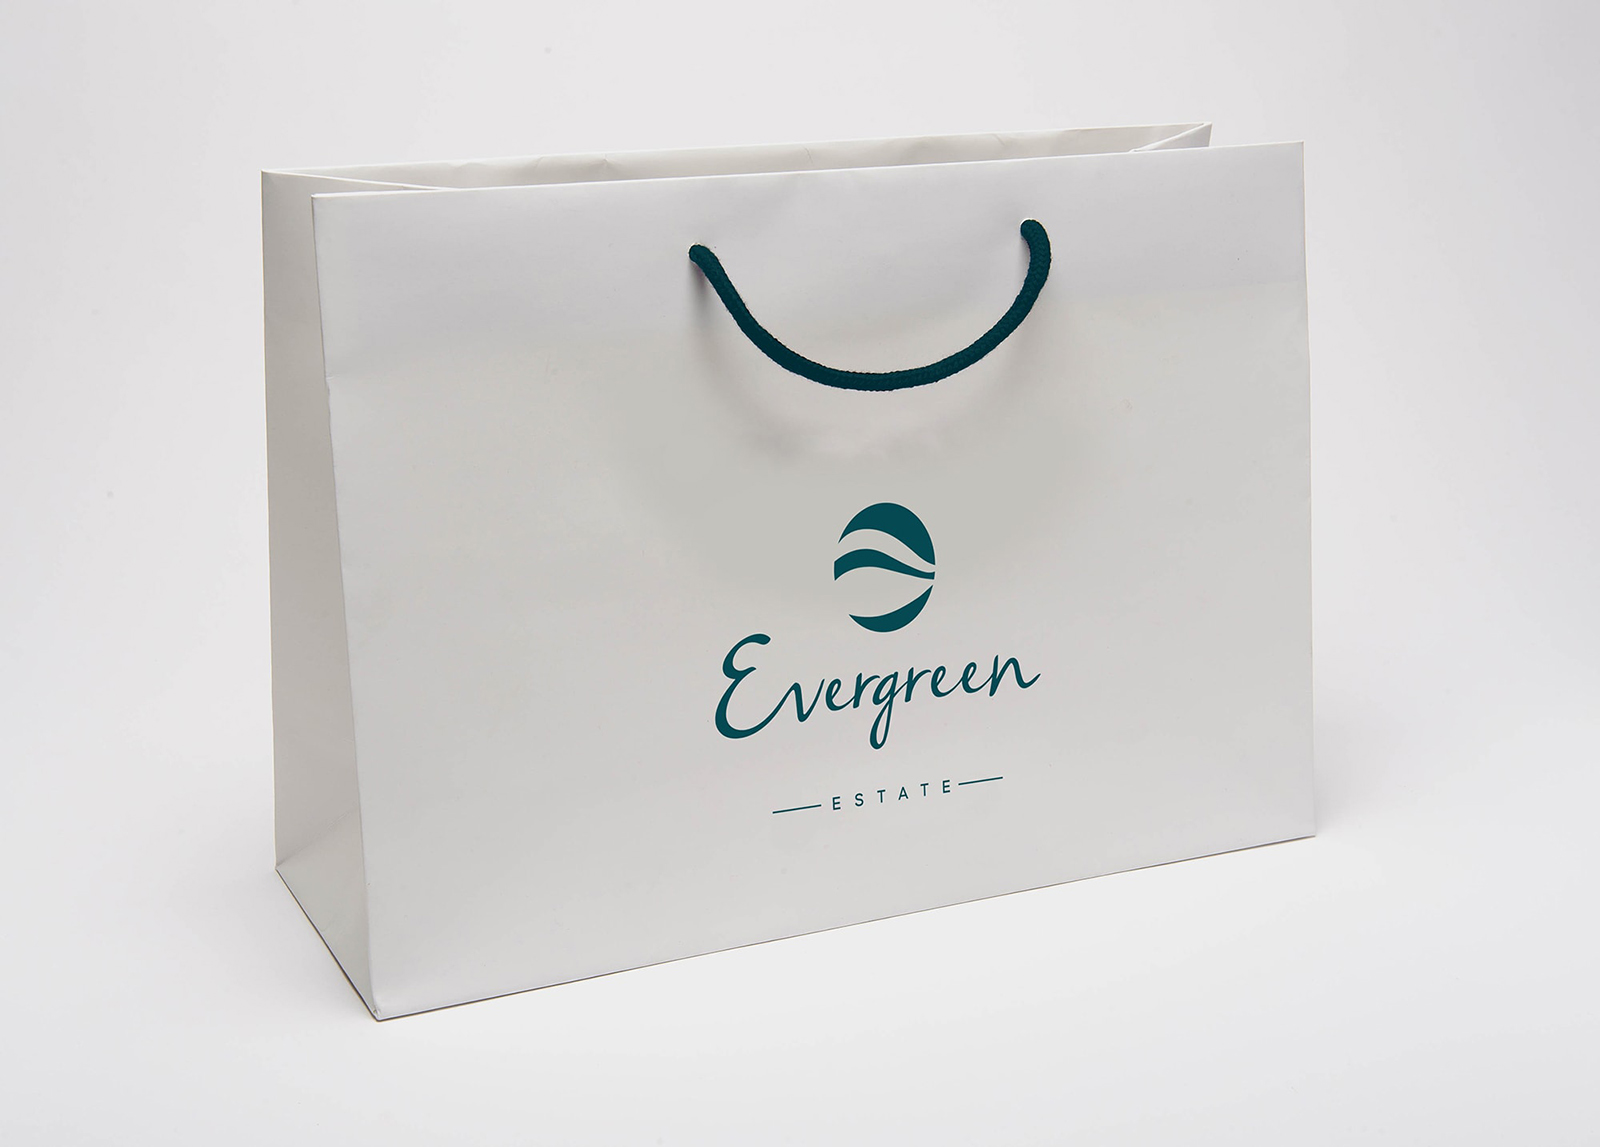 Mockup_Evergreenbag_hires-min3